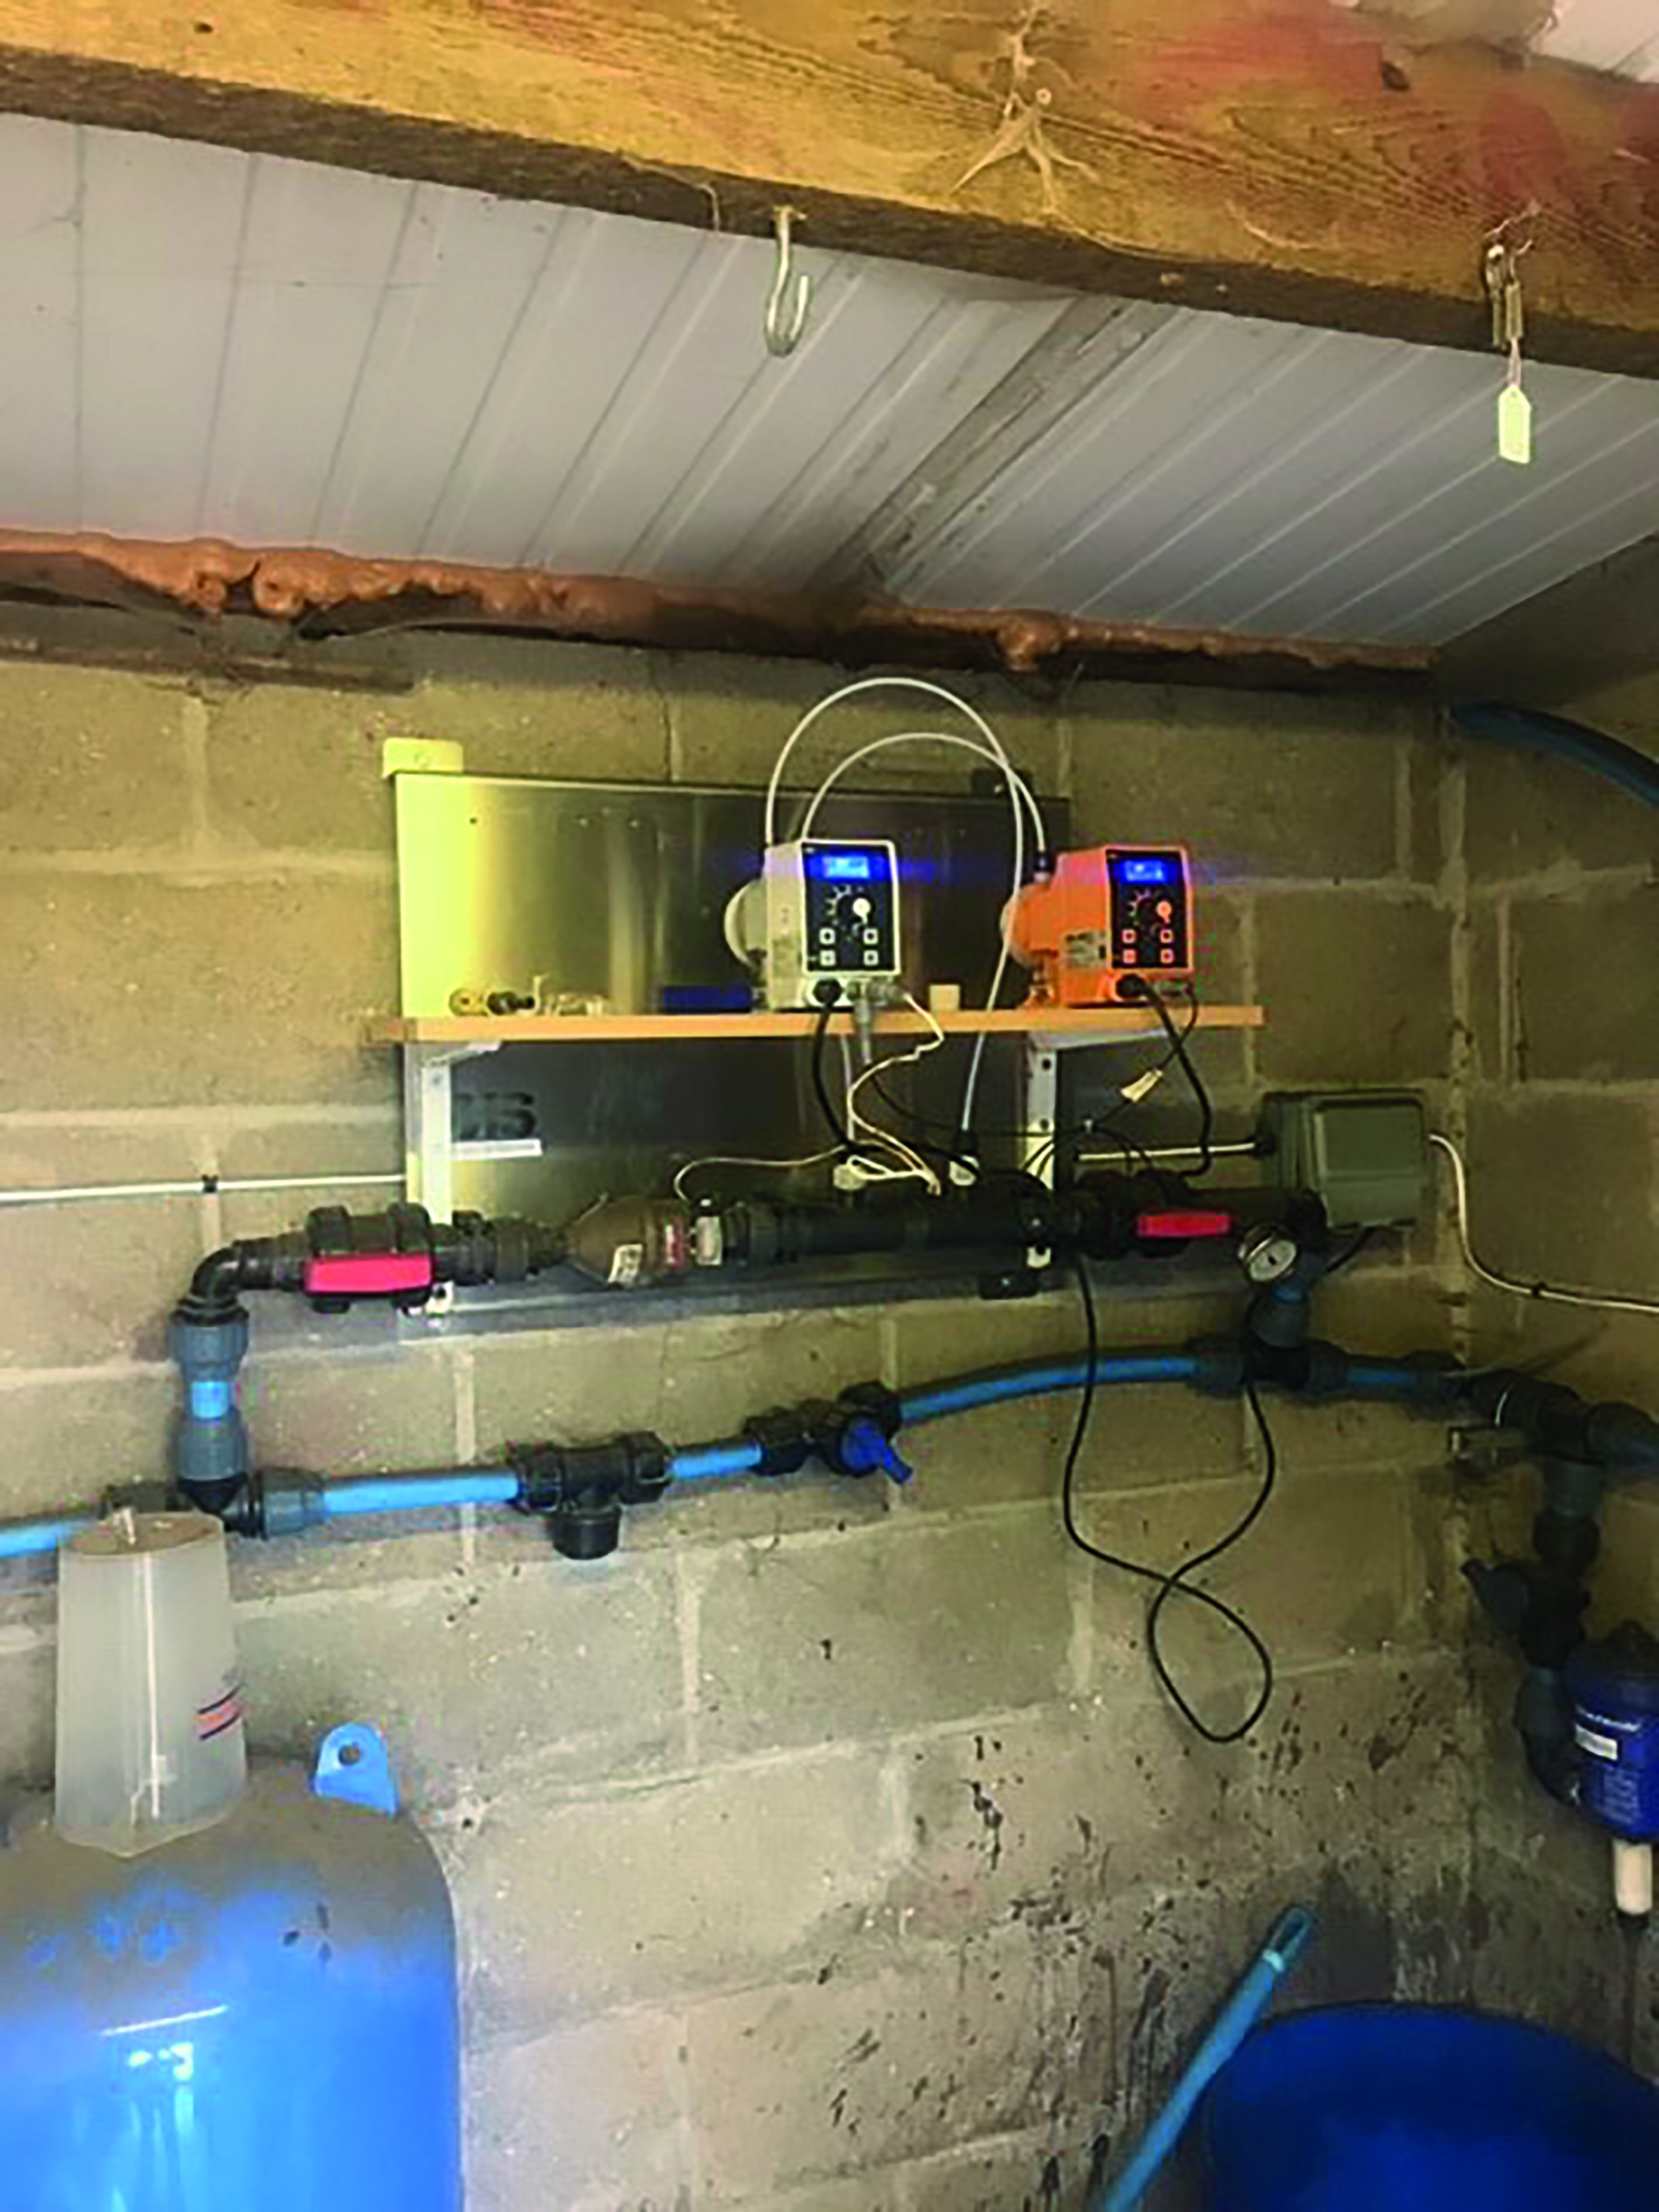 A simple install into an existing pipework system